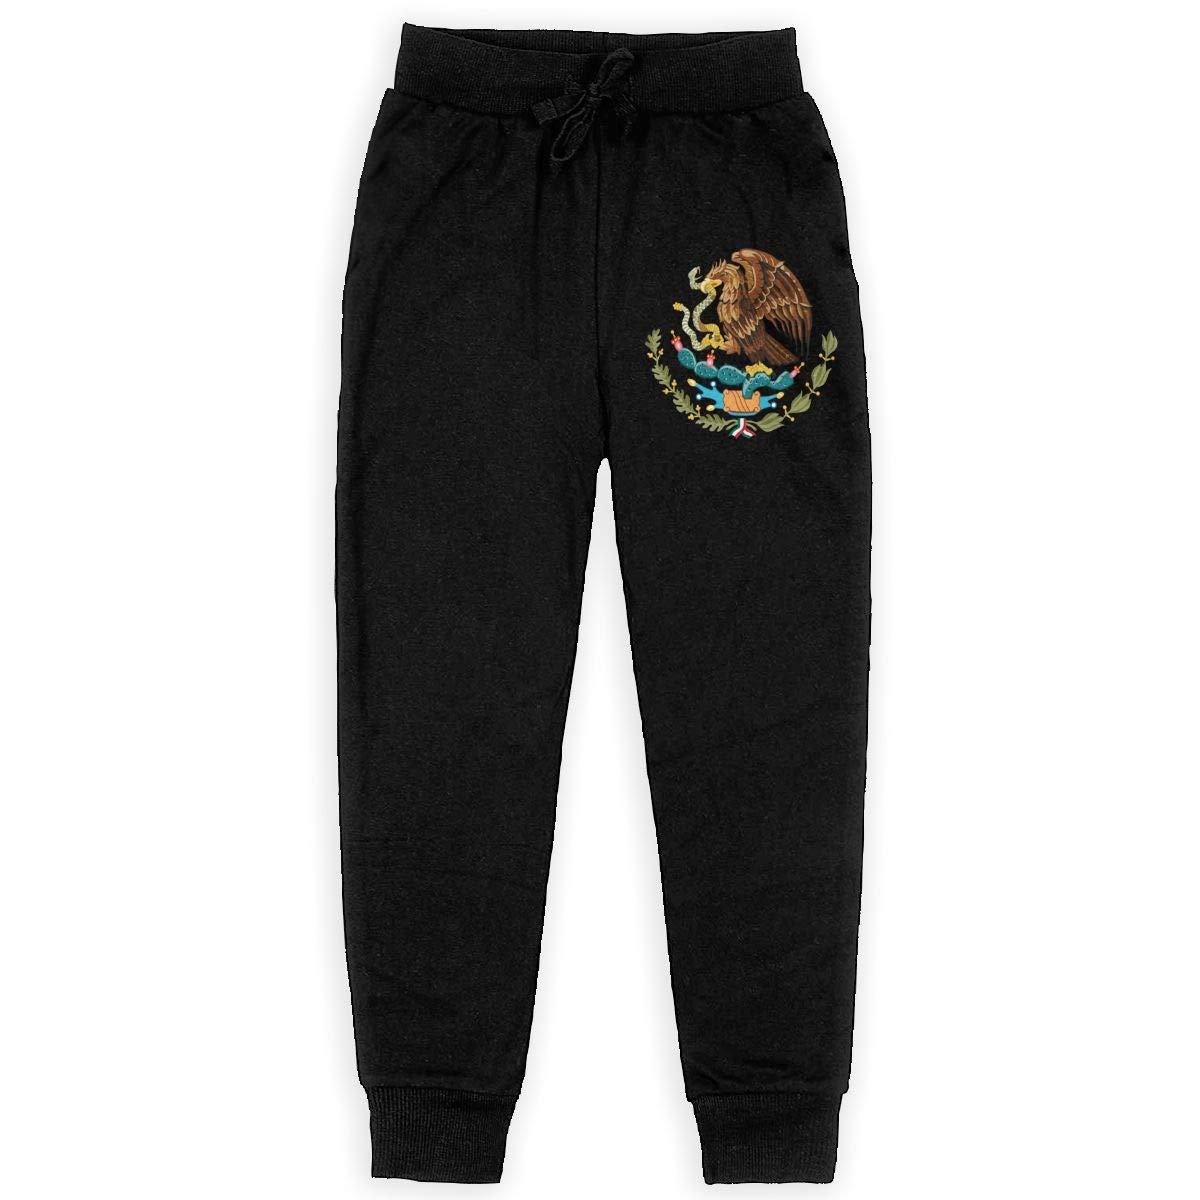 Mexico Eagle Flag Boys Sweatpants,Joggers Sport Training Pants Trousers Black